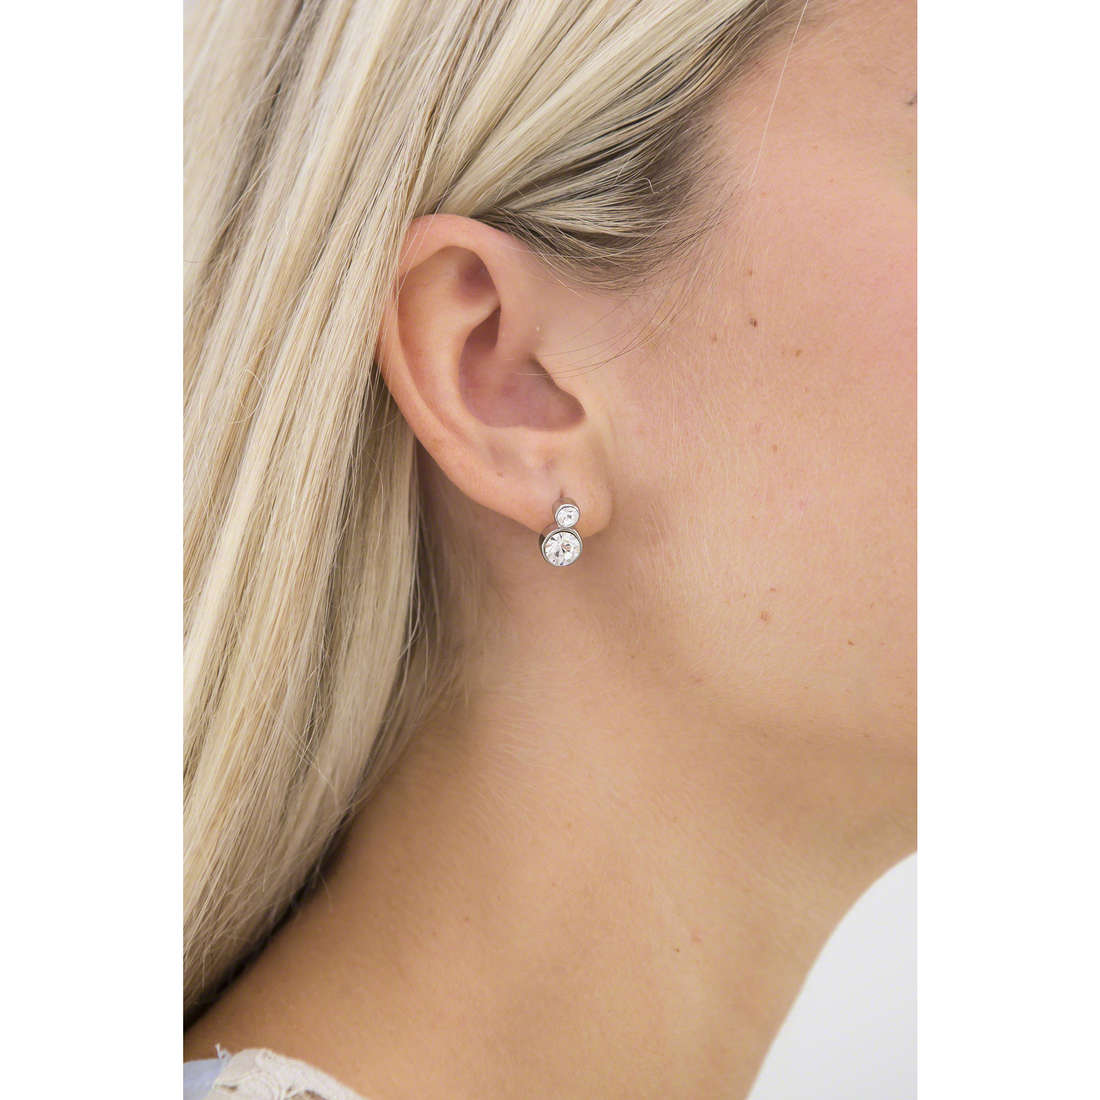 Luca Barra boucles d'oreille femme LBOK572 photo wearing